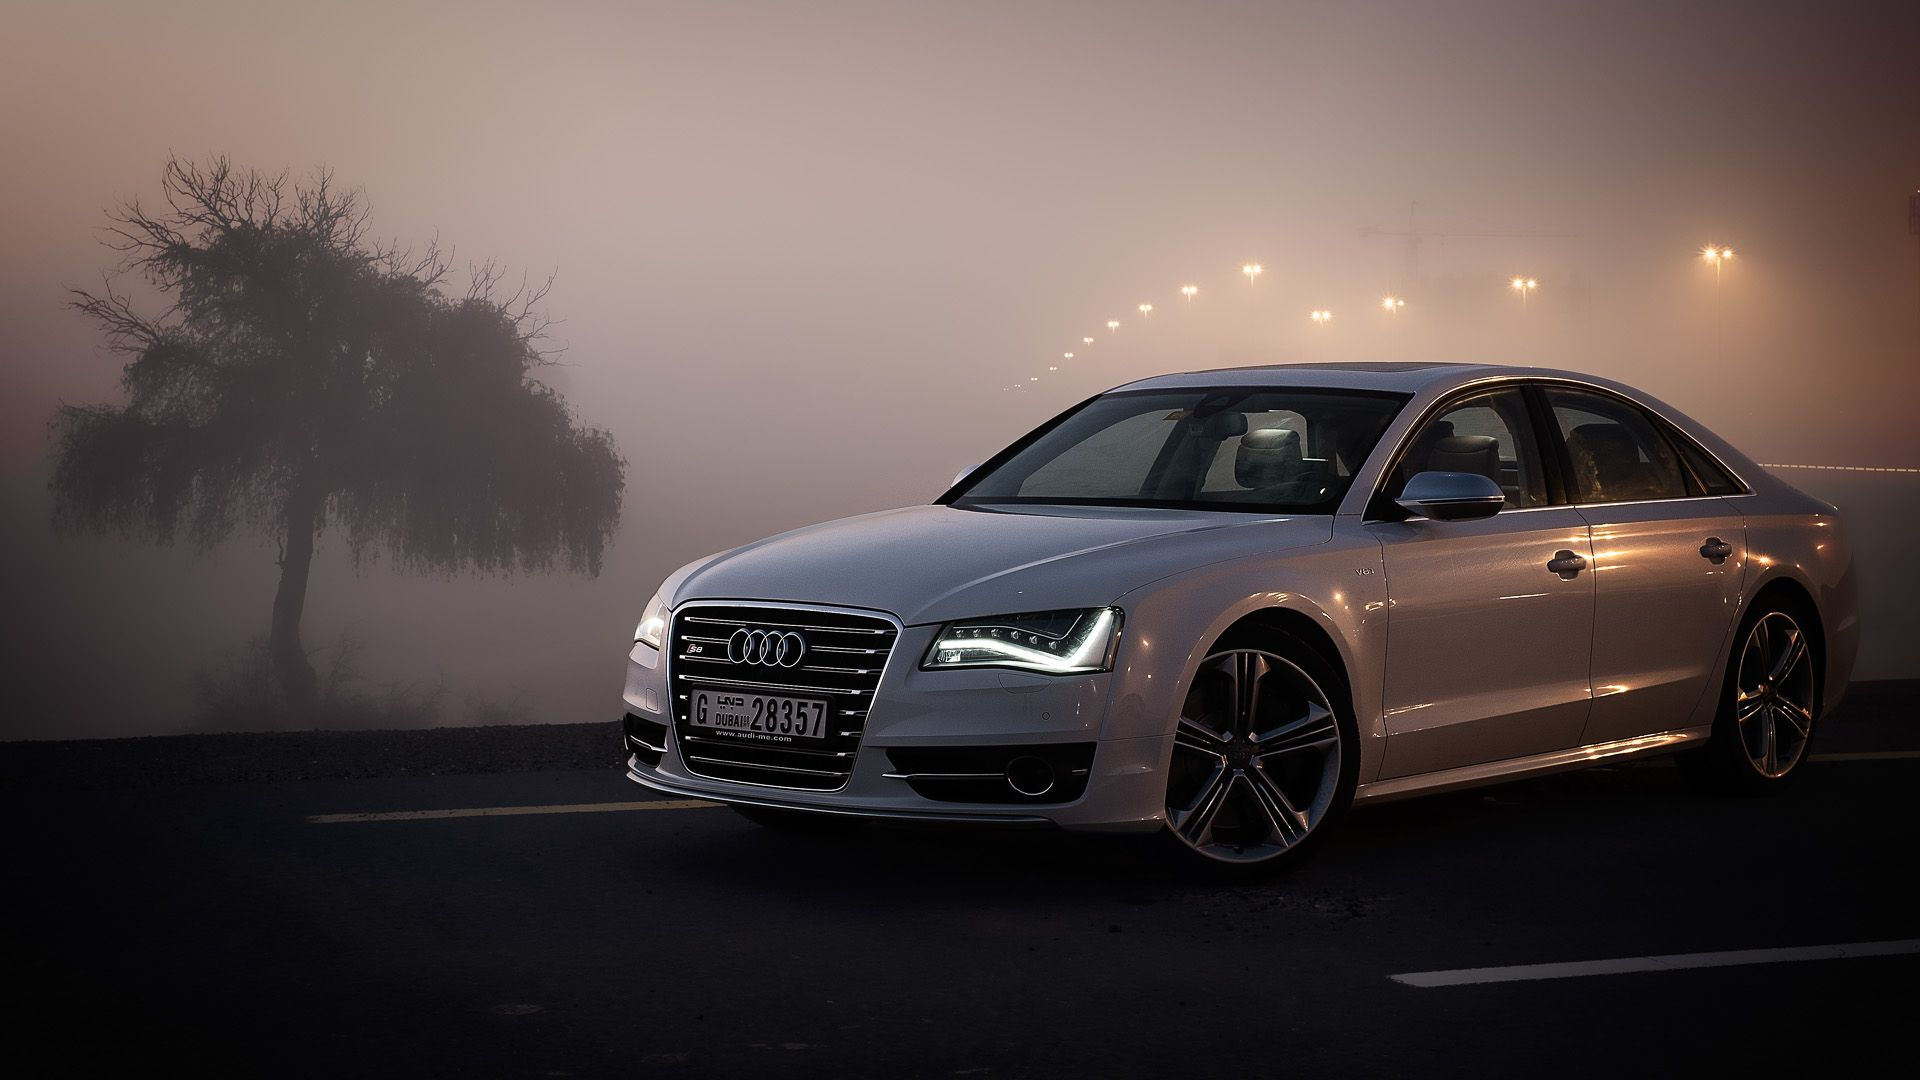 Audi S8 Wallpapers FREE Pictures on GreePX 1920x1080